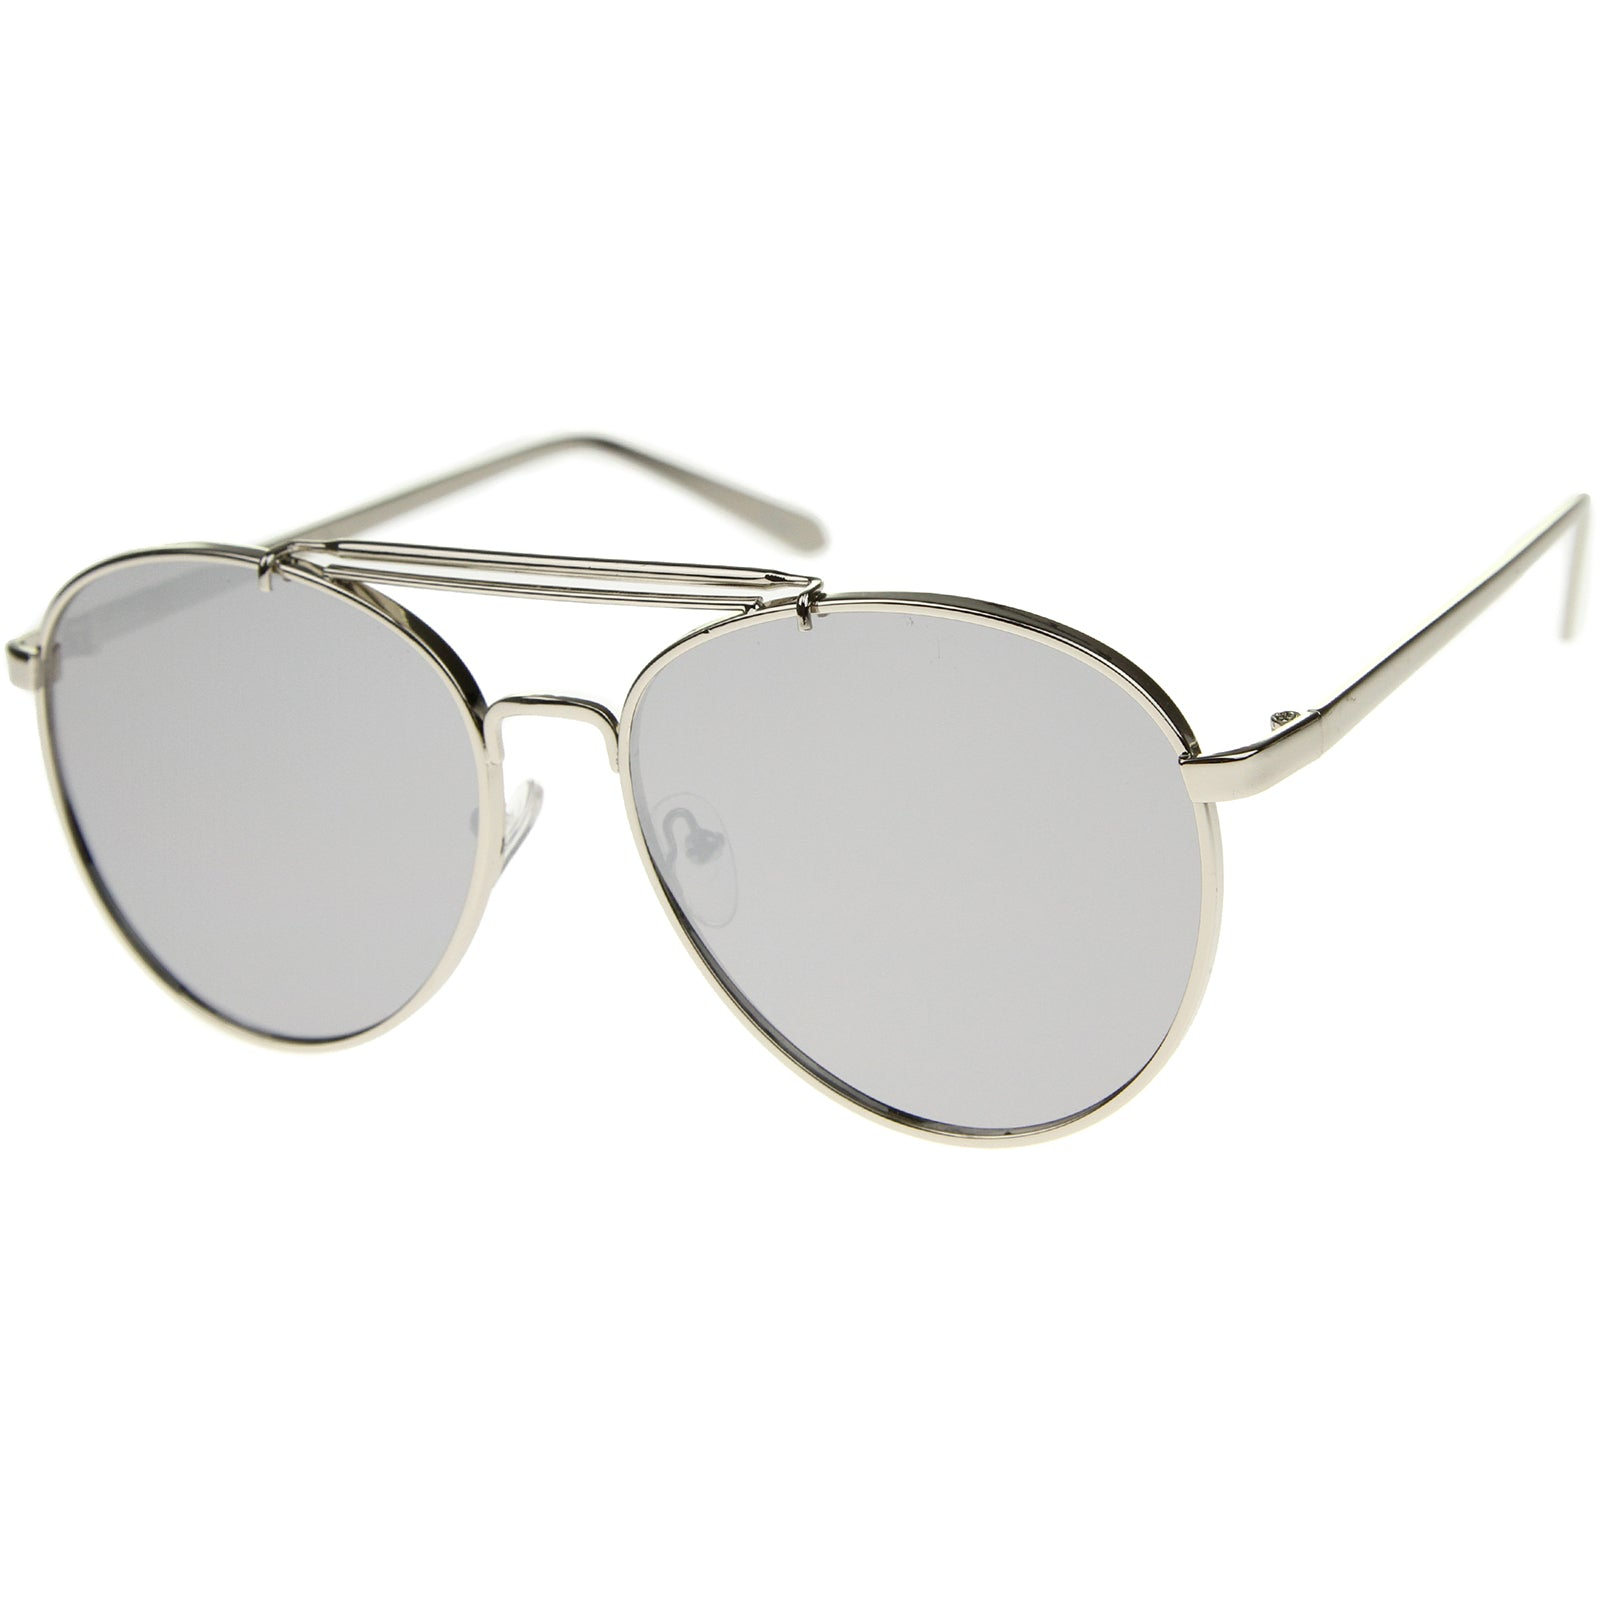 Large Metal Teardrop Double Bridge Mirrored Flat Lens Aviator Sunglasses 60mm - sunglass.la - 14